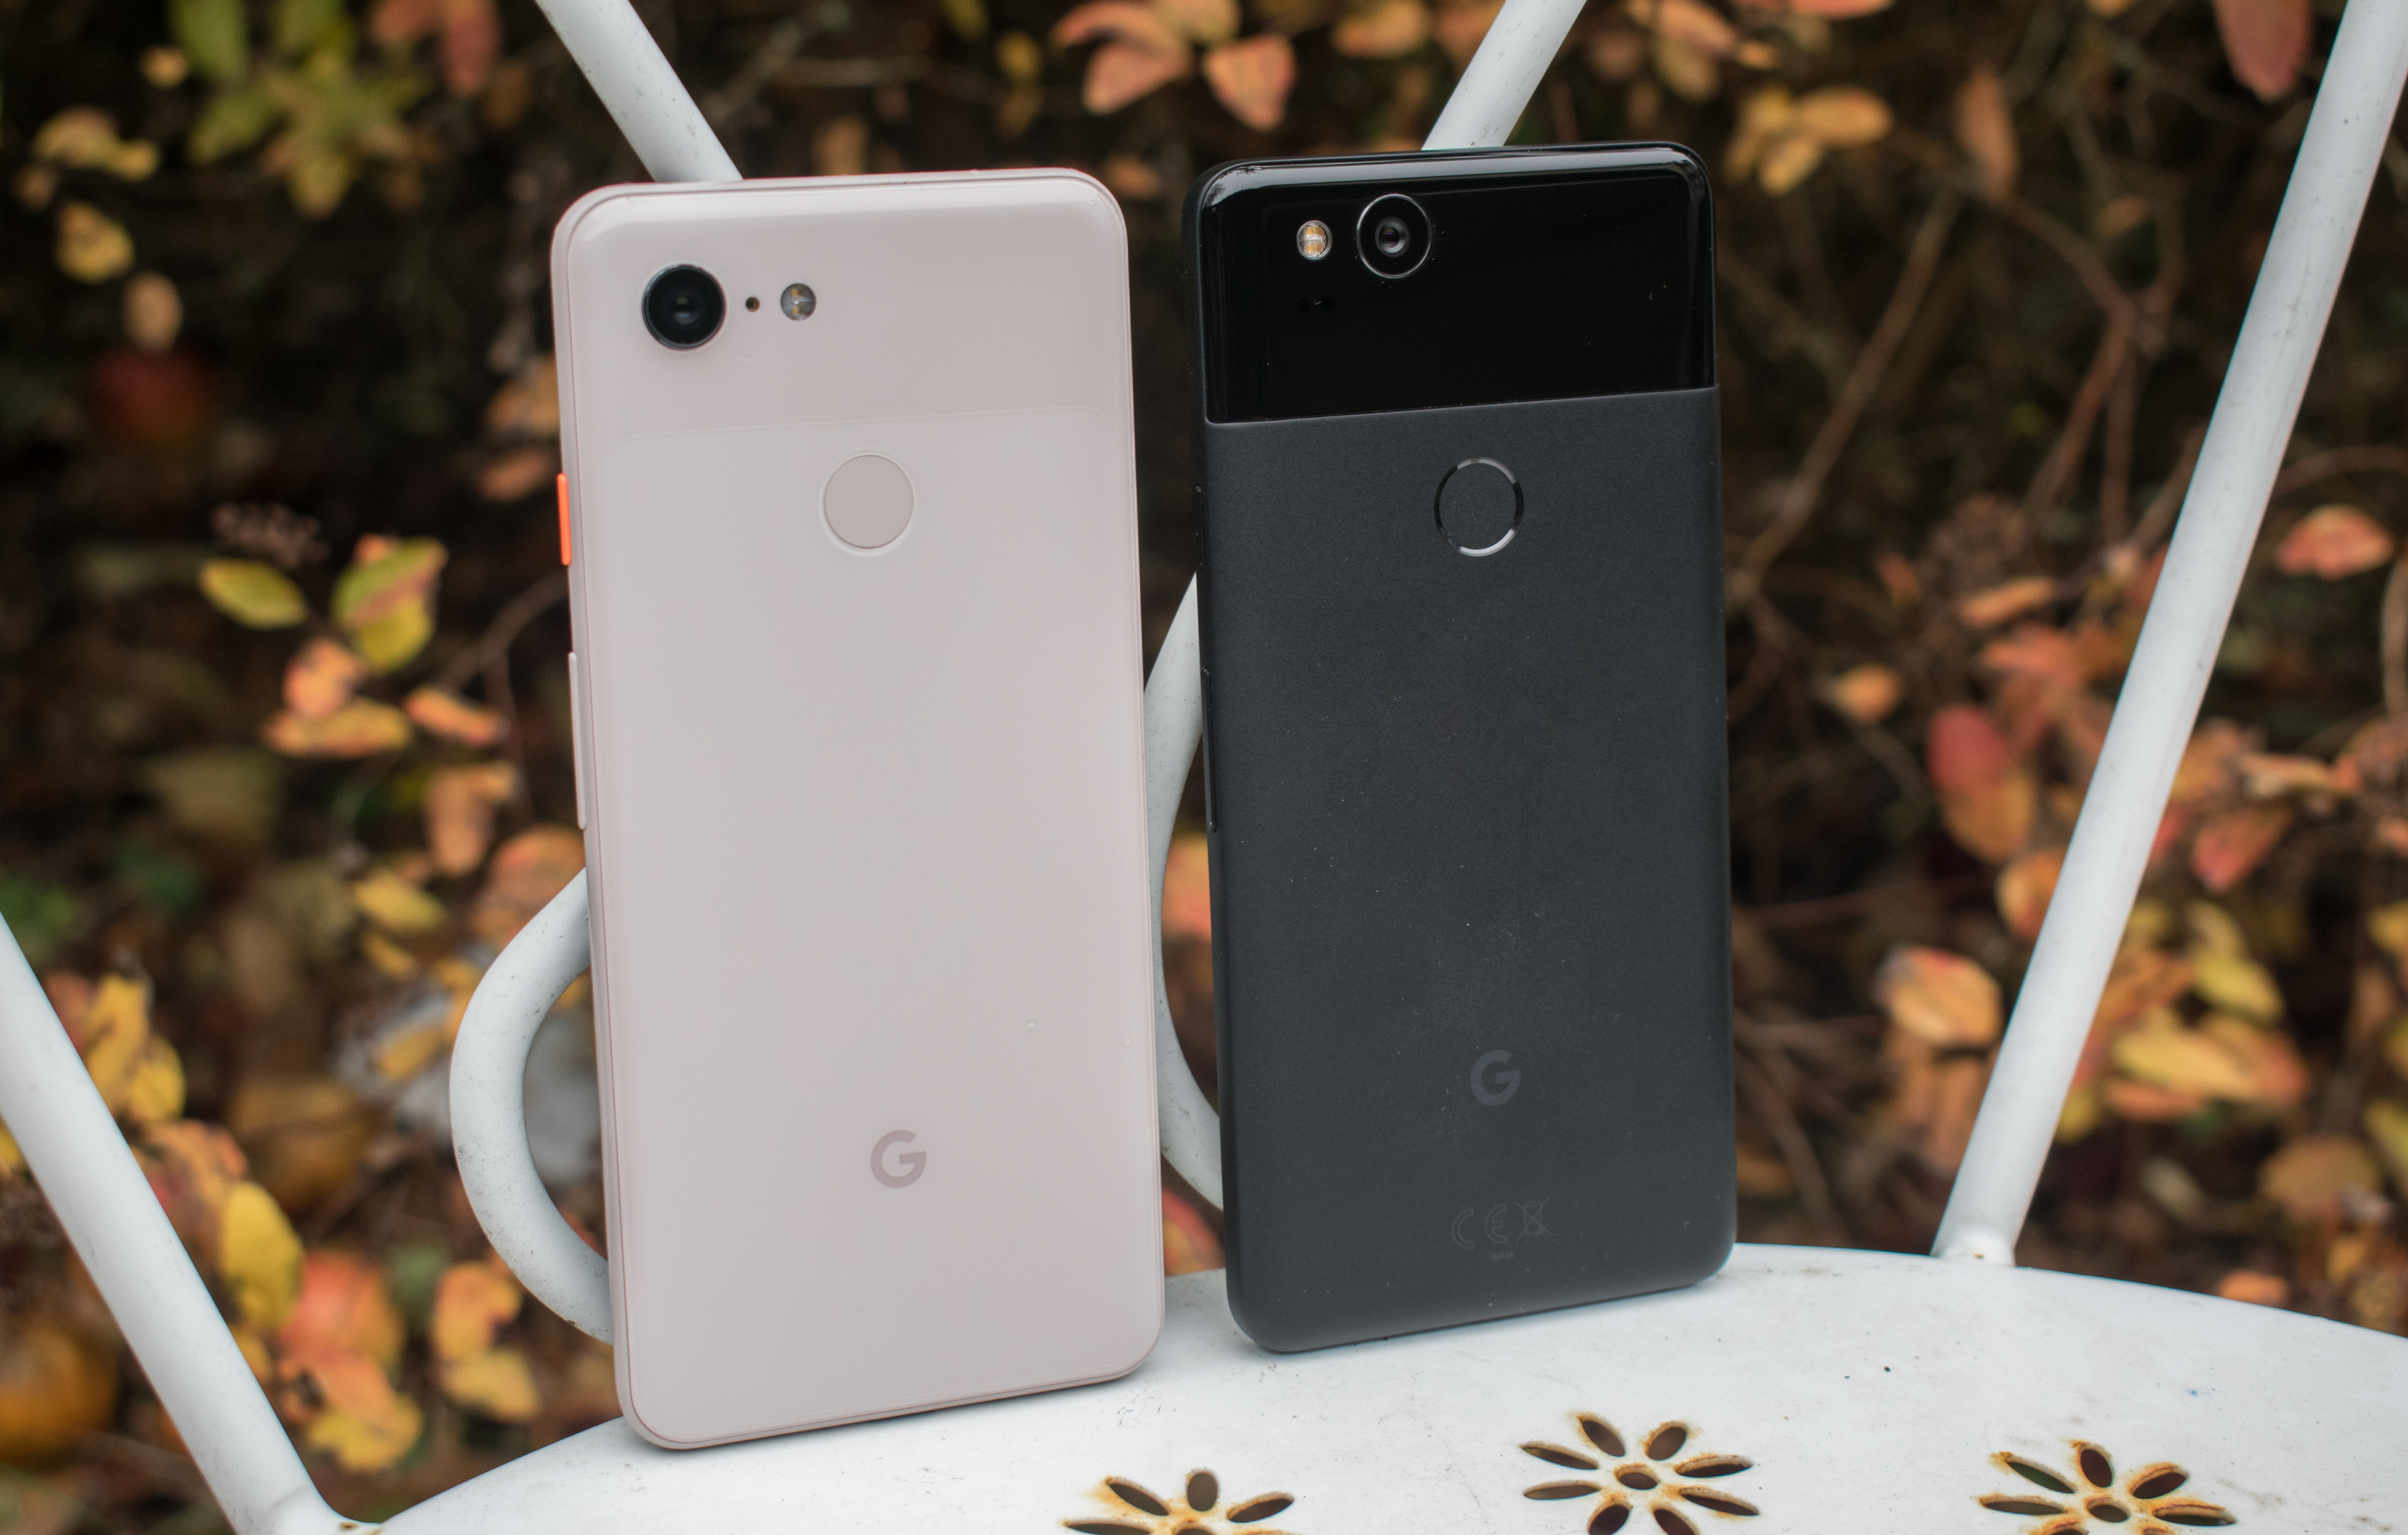 The Google Pixel 3 Review: The Ultimate Camera Test